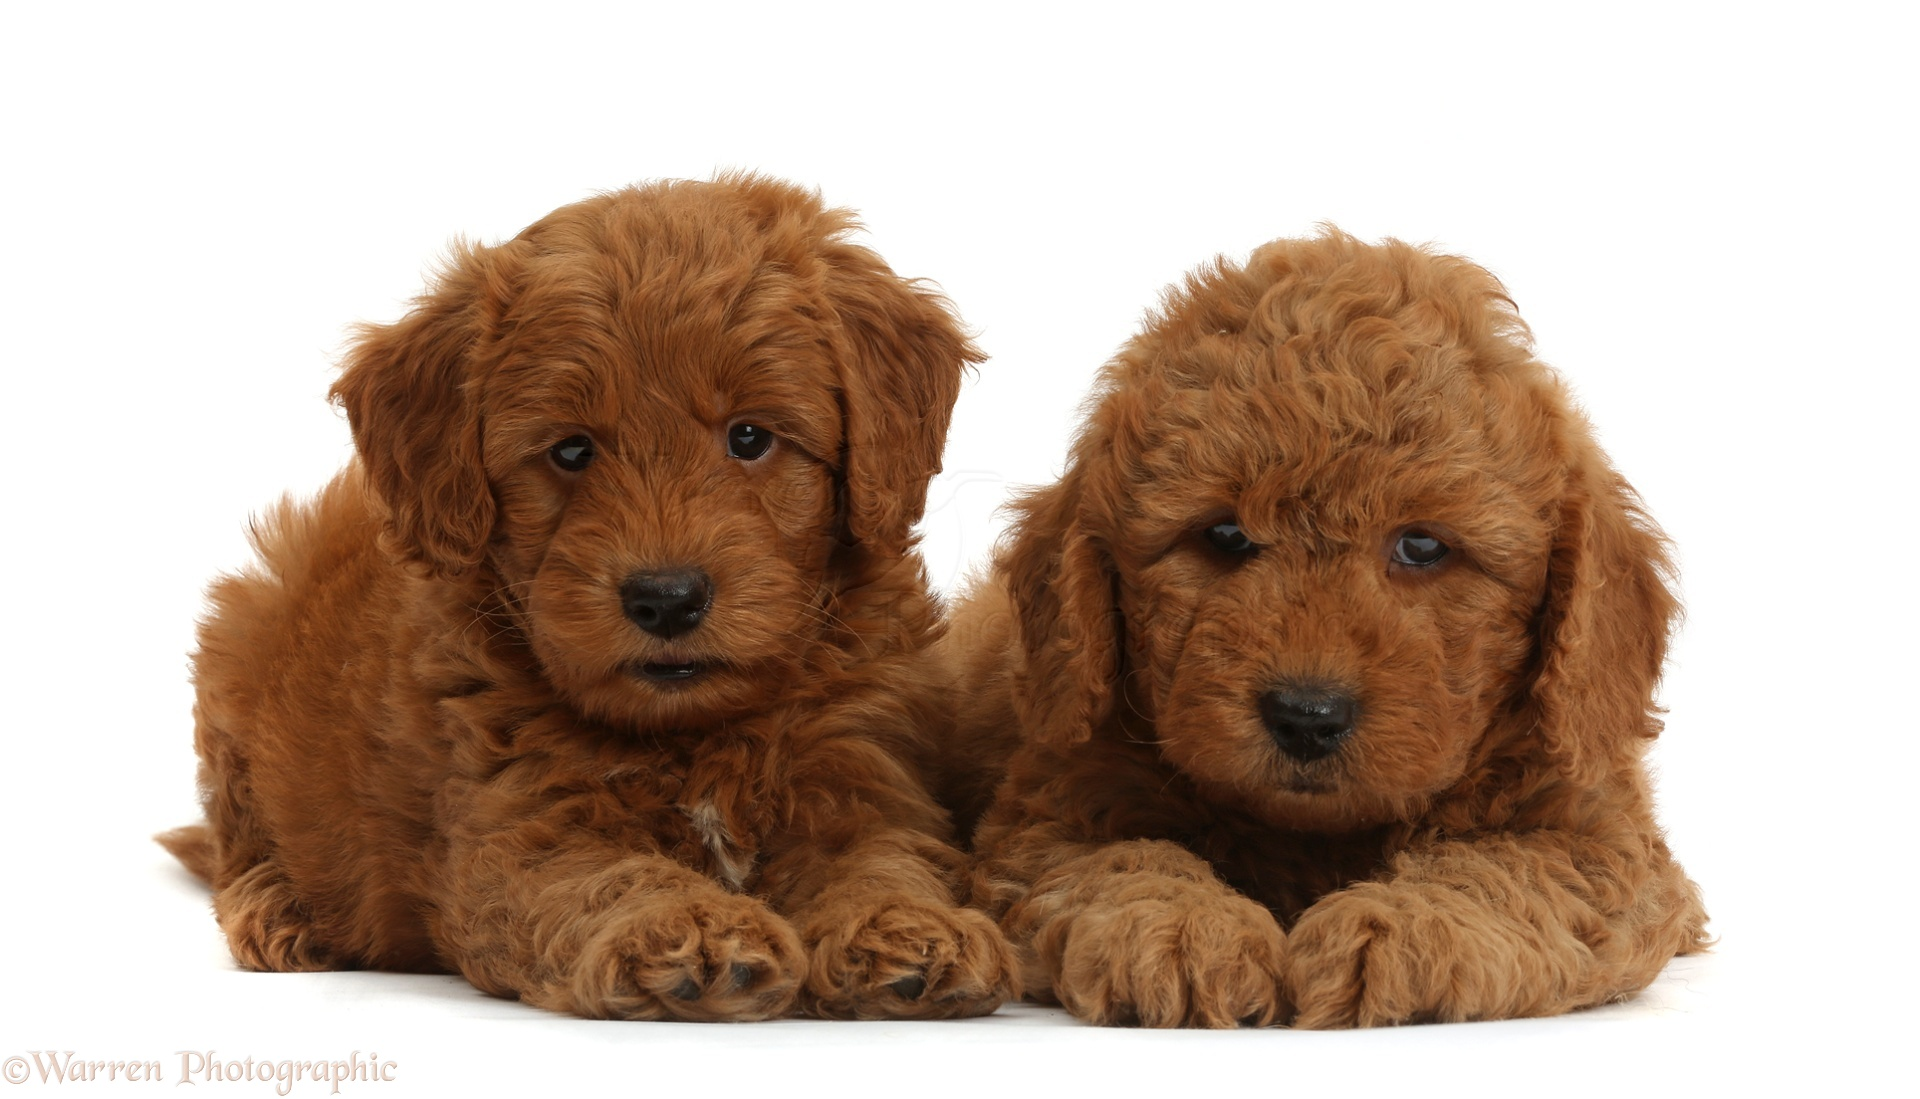 Dogs Cute F1b Goldendoodle Puppies Photo Wp37277